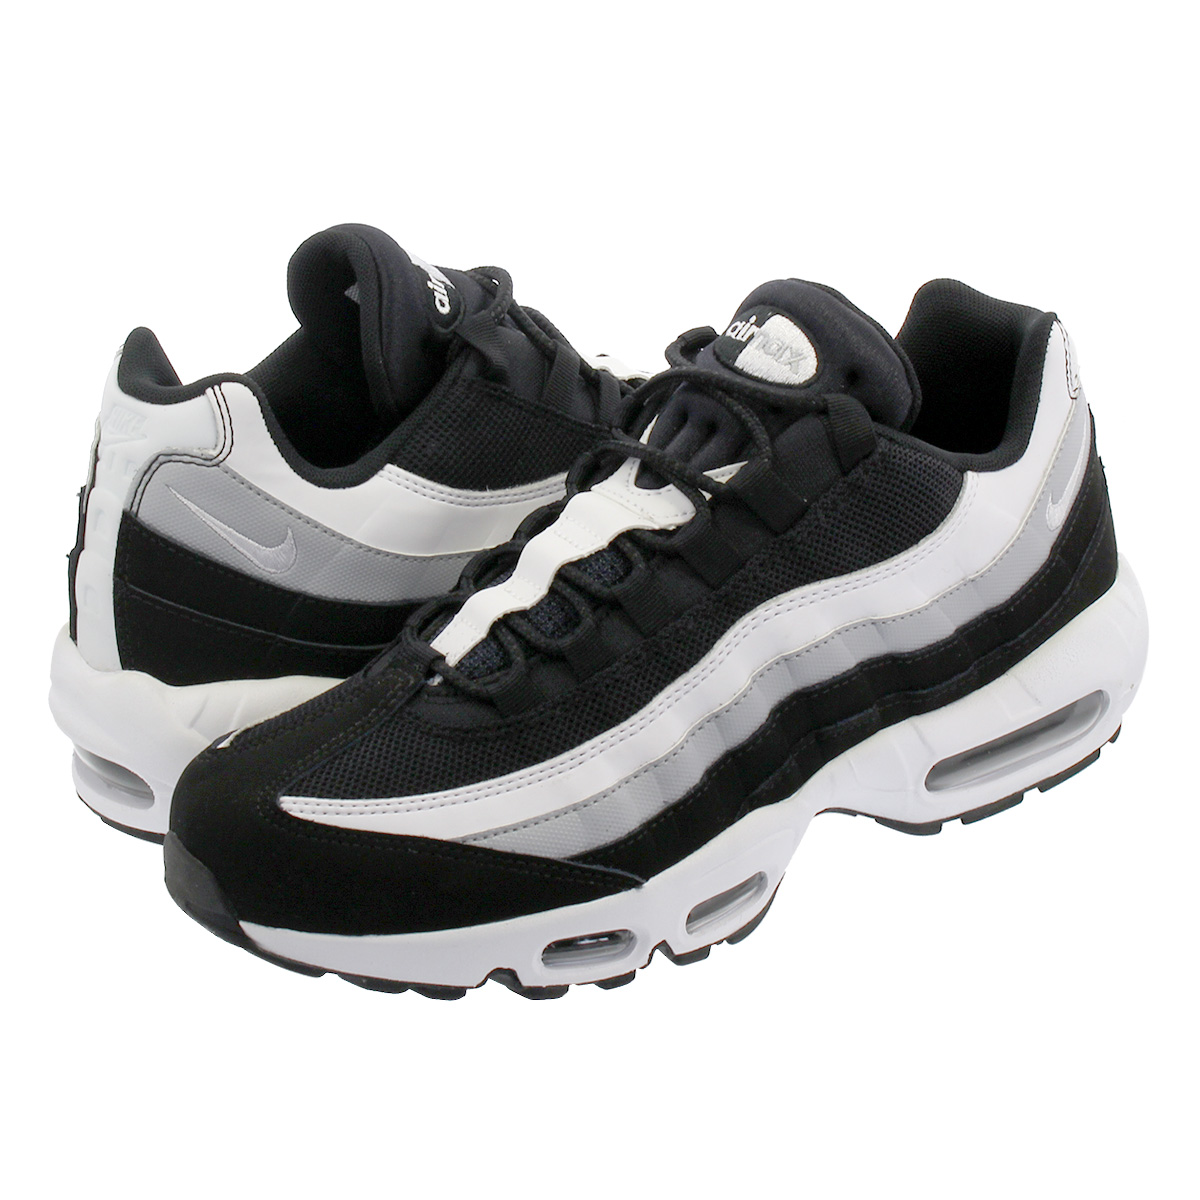 NIKE AIR MAX 95 ESSENTIAL Kie Ney AMAX 95 essential BLACK WHITE WOLF GREY  749 602c2b02e